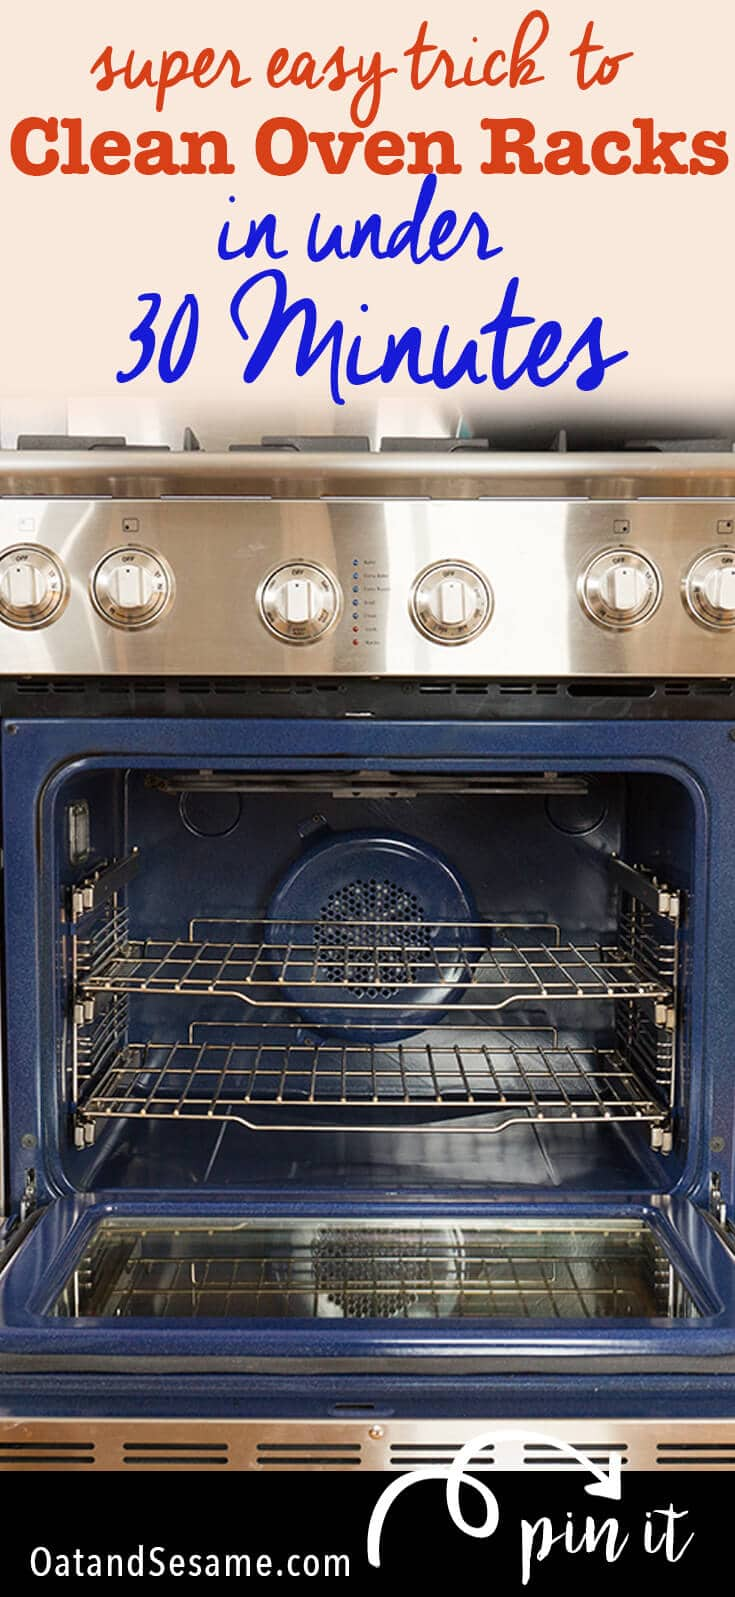 Amazing Kitchen Hack for Cleaning those Tough Oven Racks! No more scrubbing!! Check out this tip at OatandSesame.com